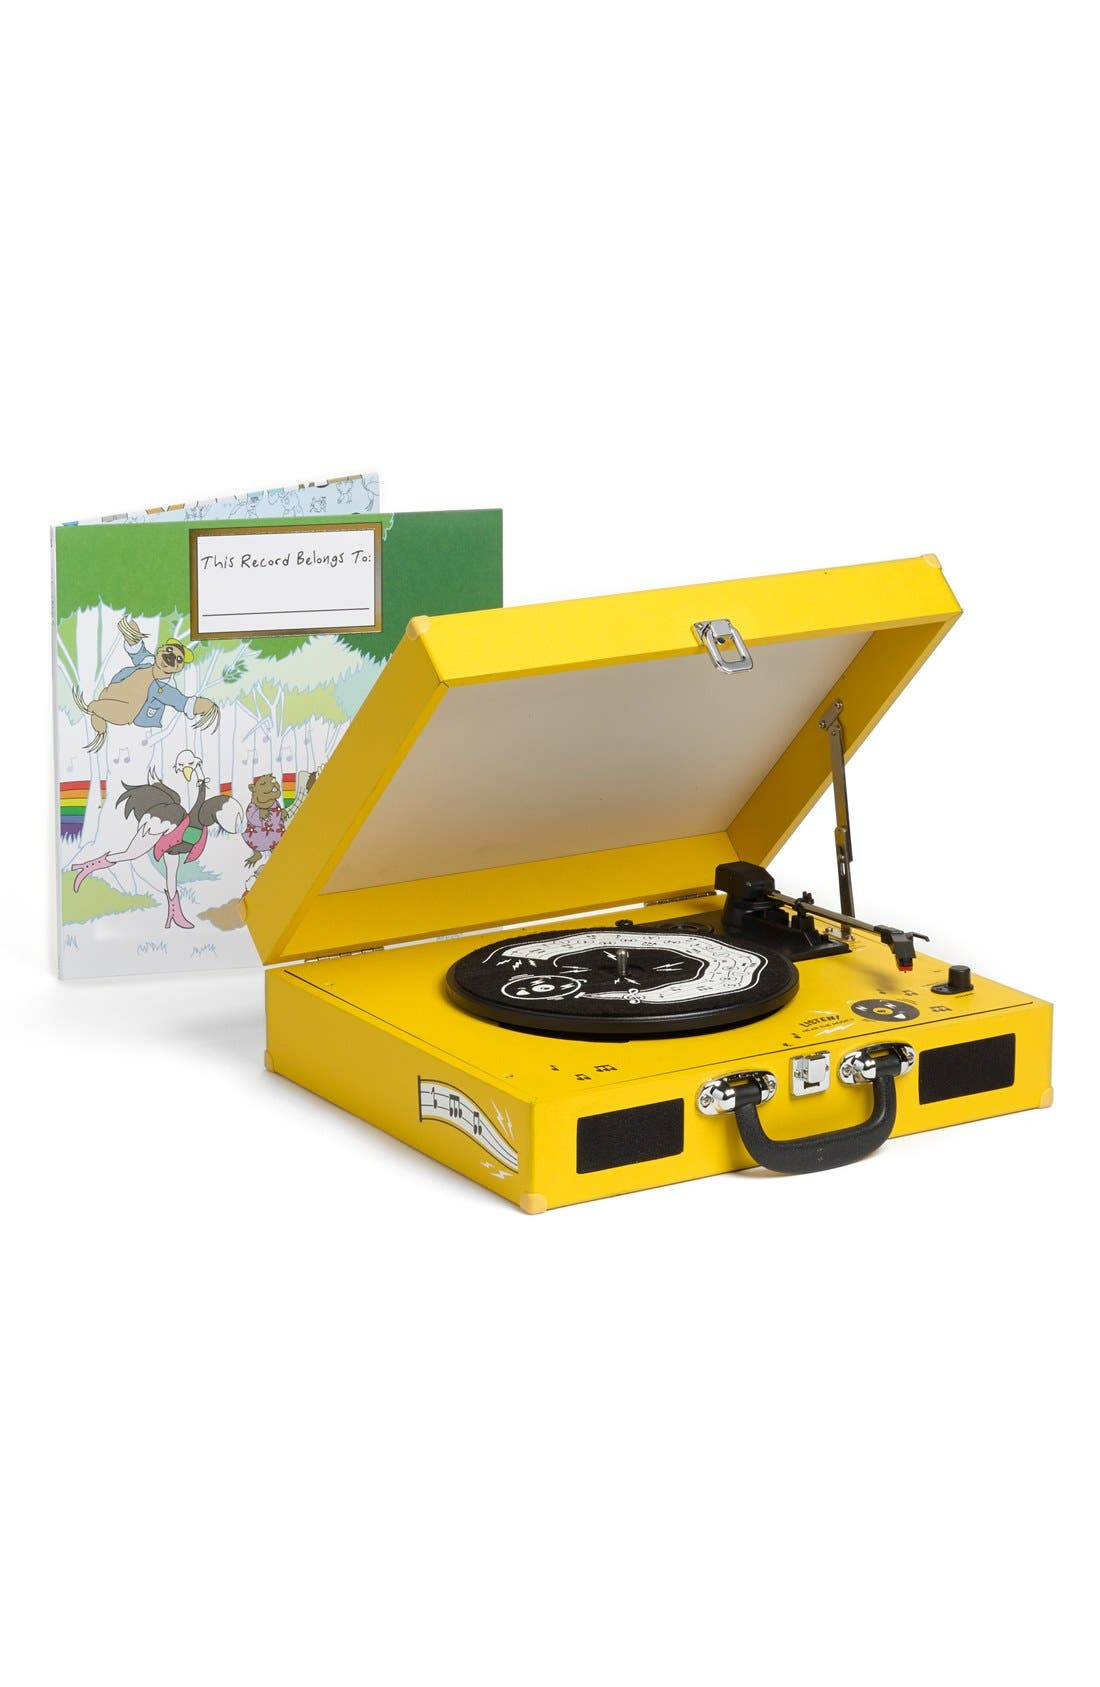 The Third Man Mini Record Player & This Record Belongs To ___ Storybook & LP Set, Main, color, 700